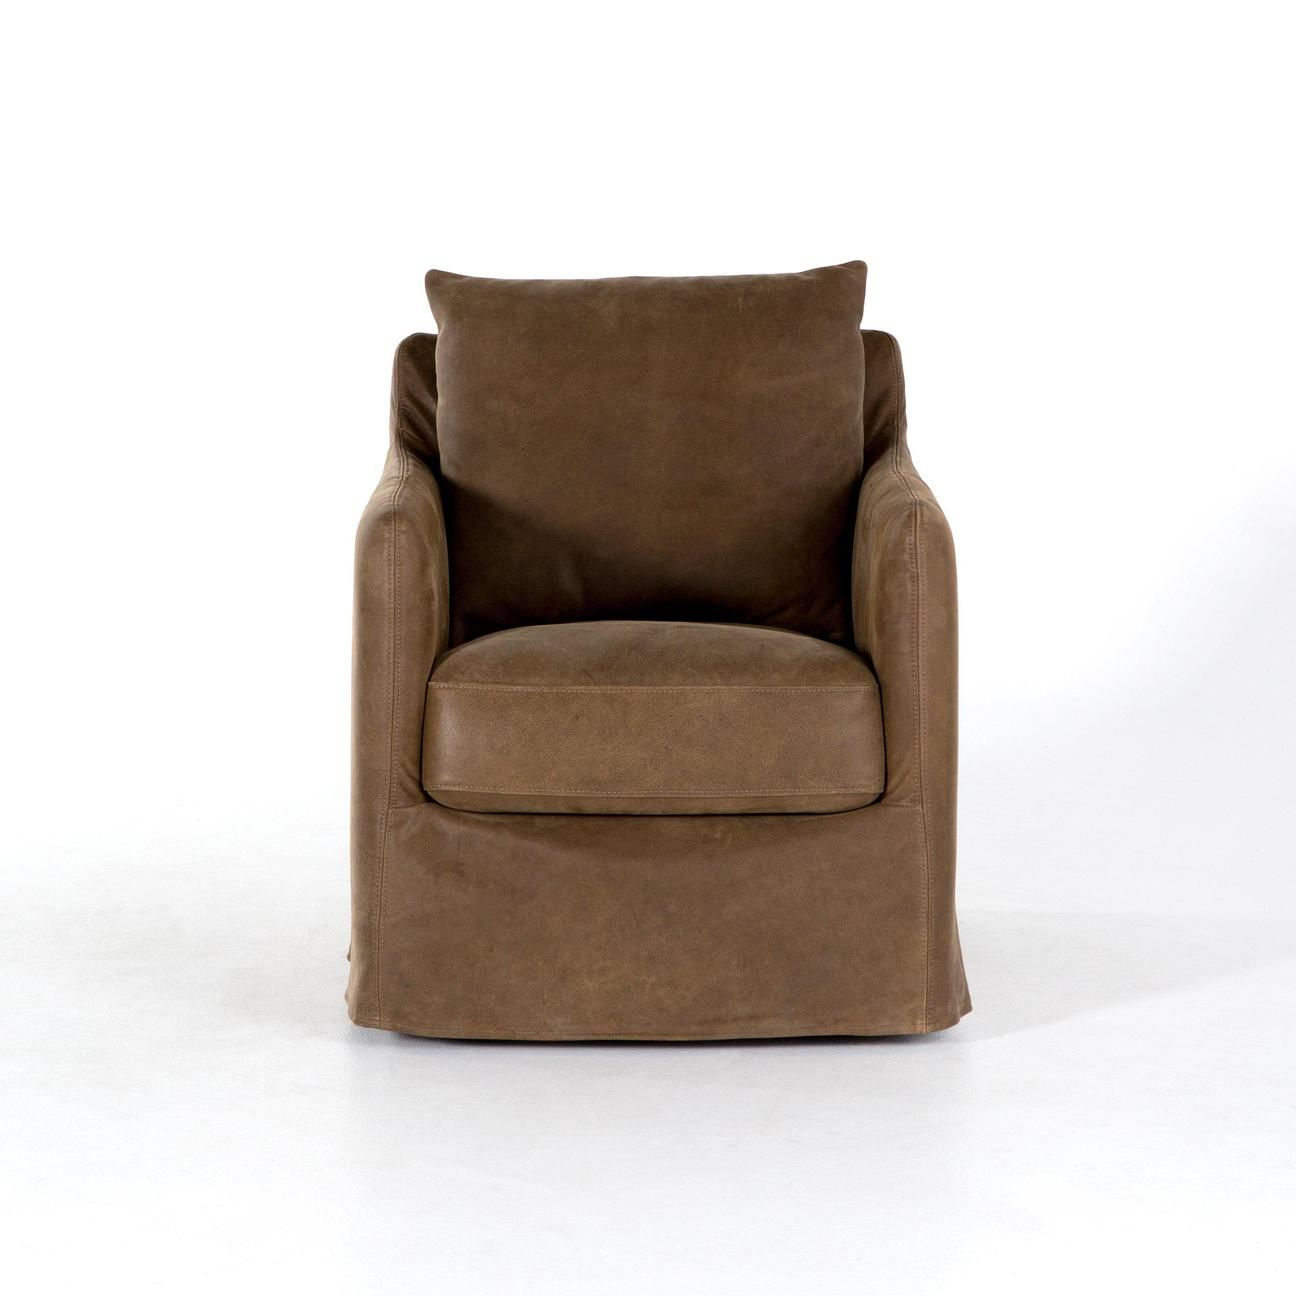 Kensington Collection Banks Top-Grain Leather Swivel Chair: Umber regarding Umber Grey Swivel Accent Chairs